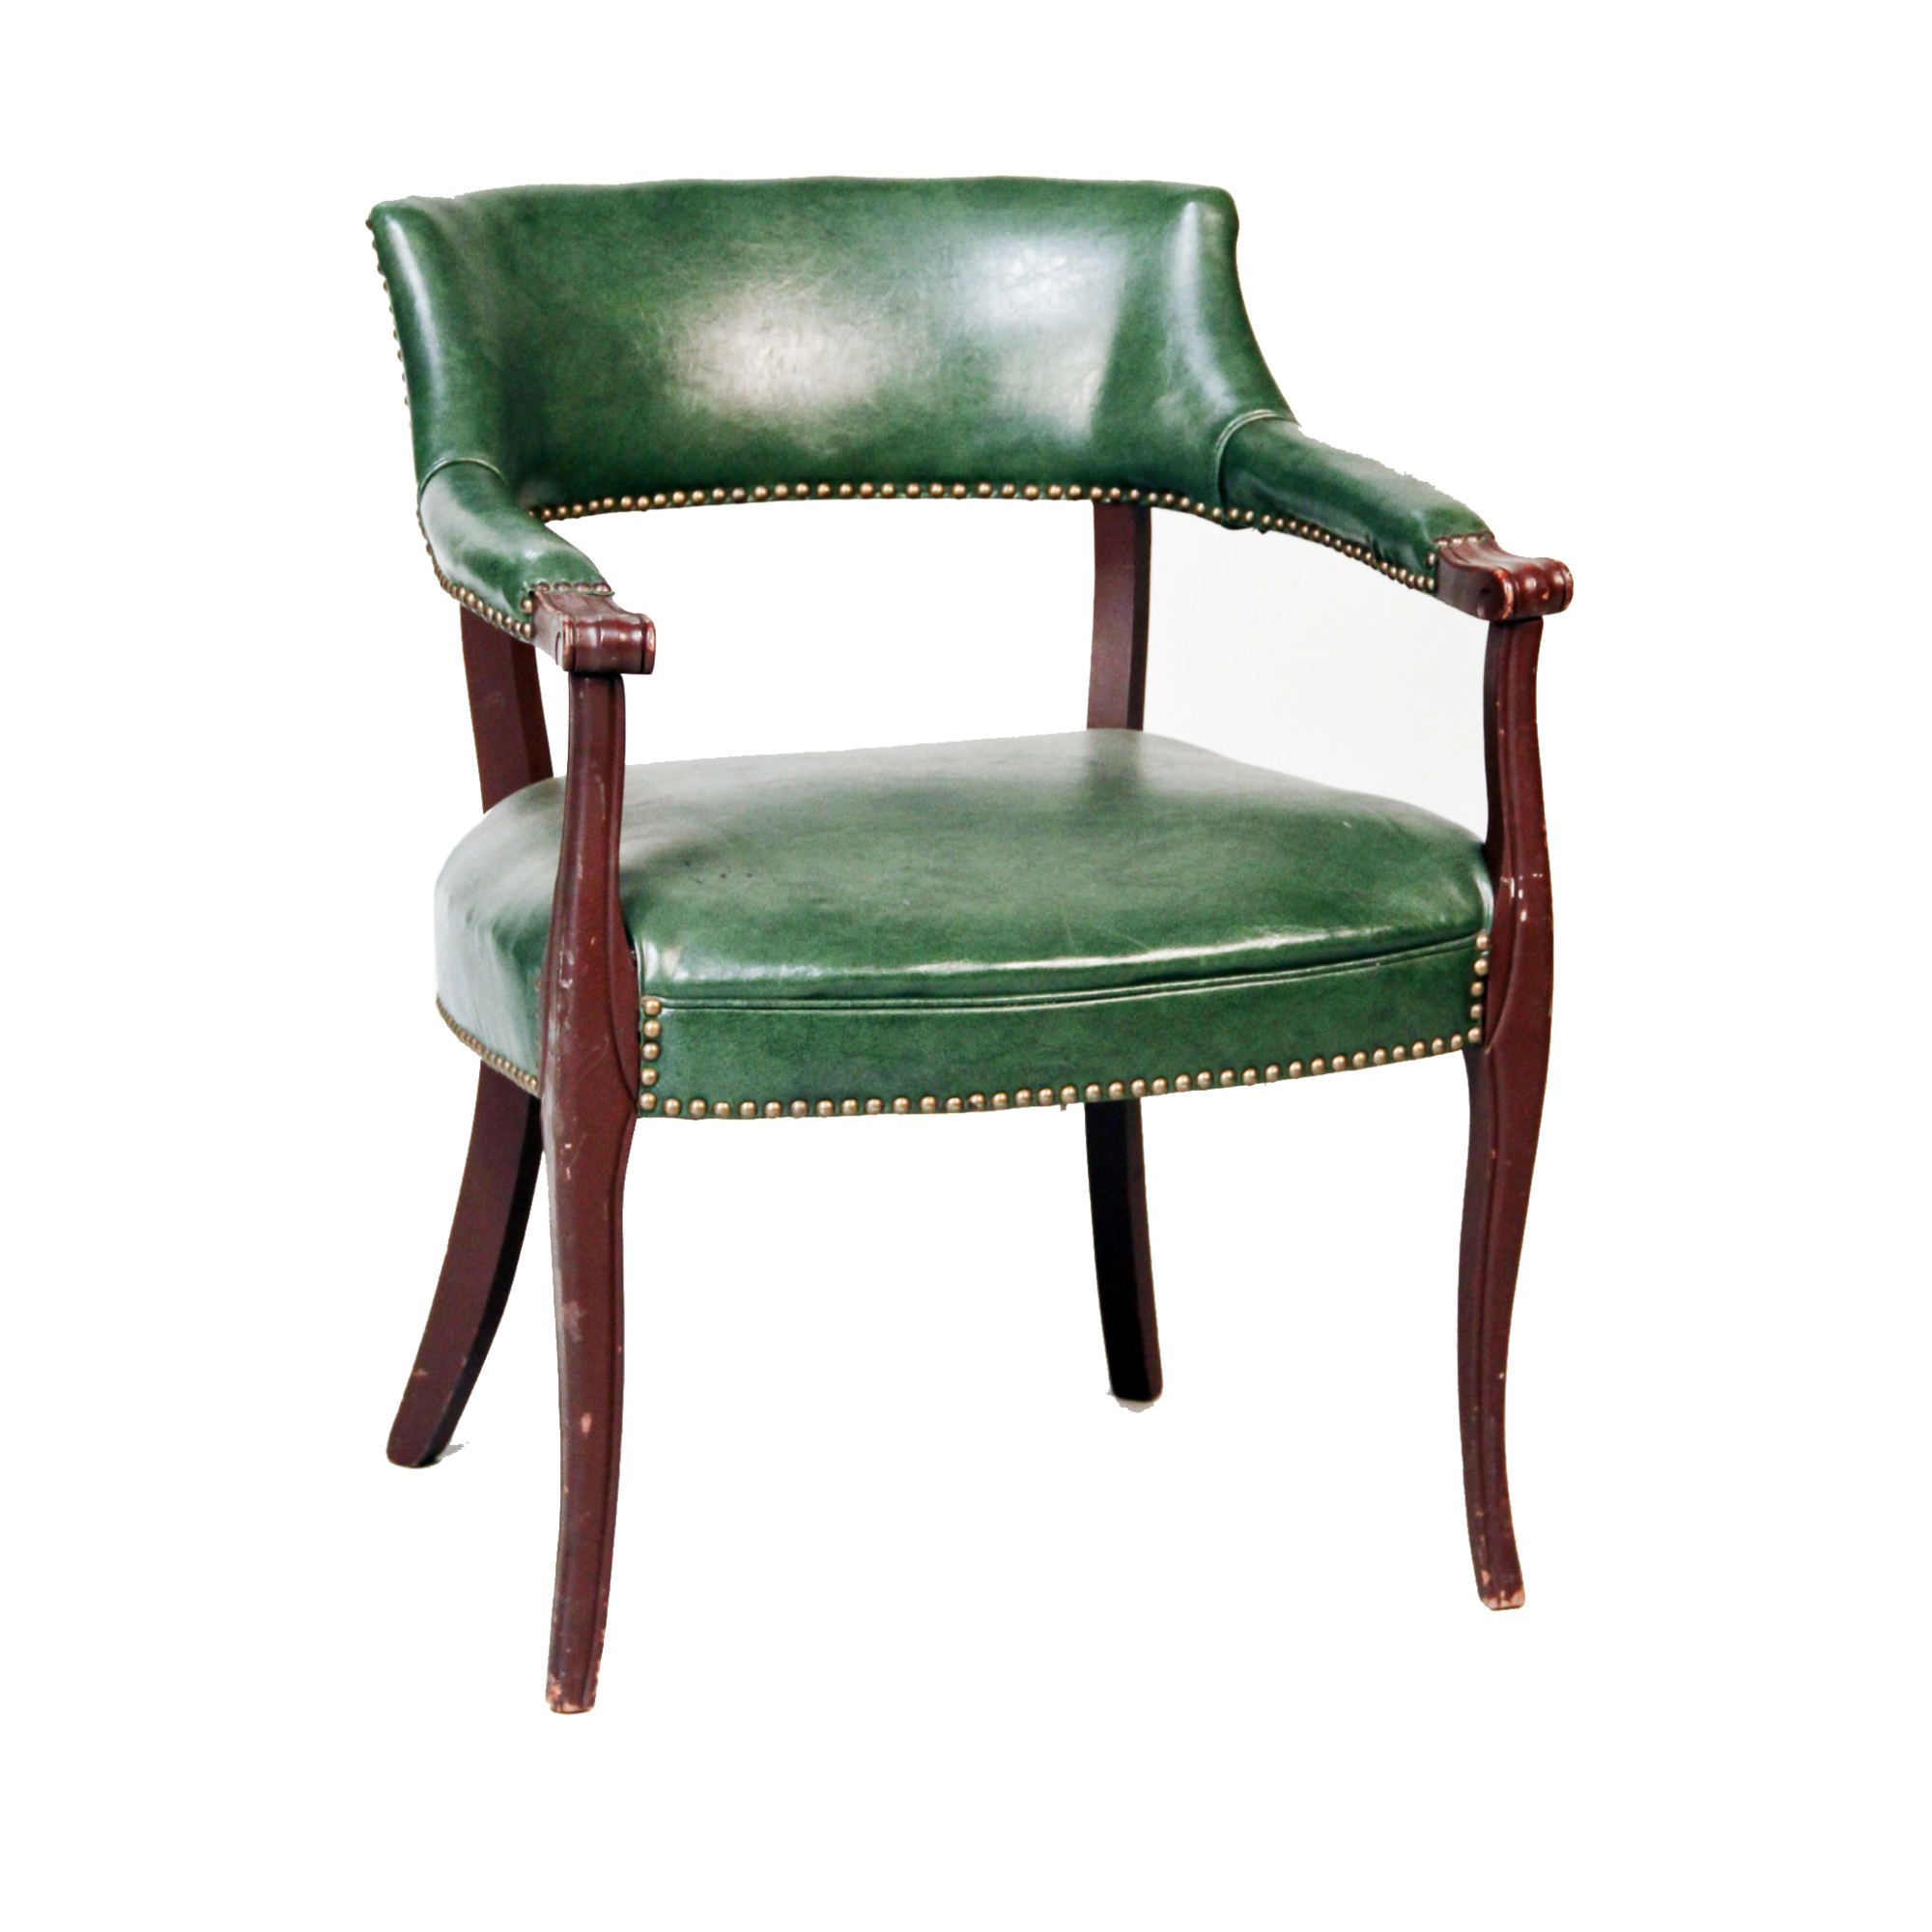 Peachy Green Leather Barrel Accent Chair Peter Corvallis Uwap Interior Chair Design Uwaporg